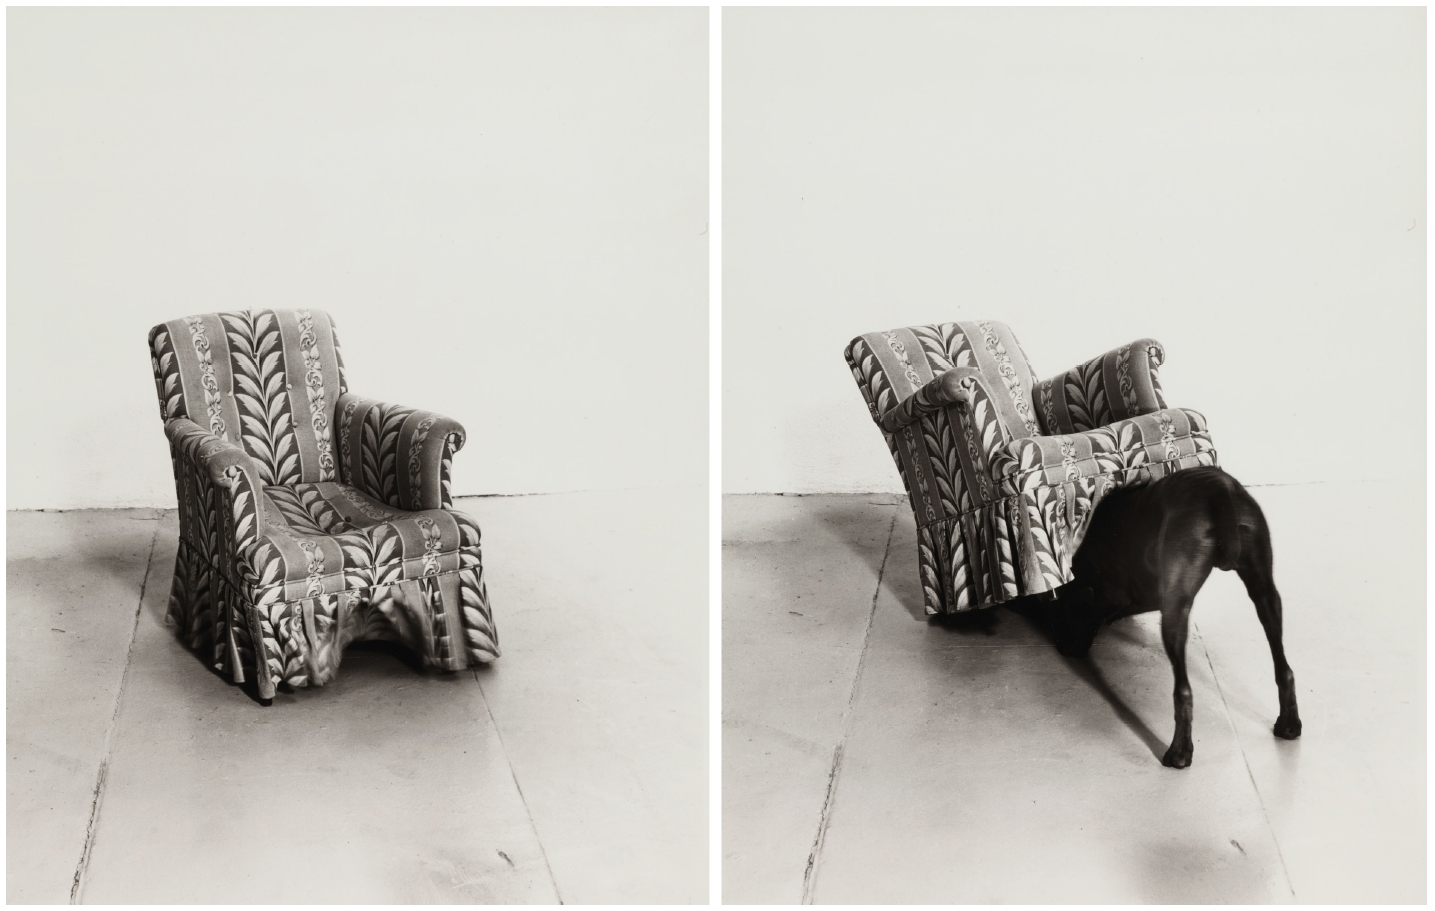 So Reclined, 1971-72